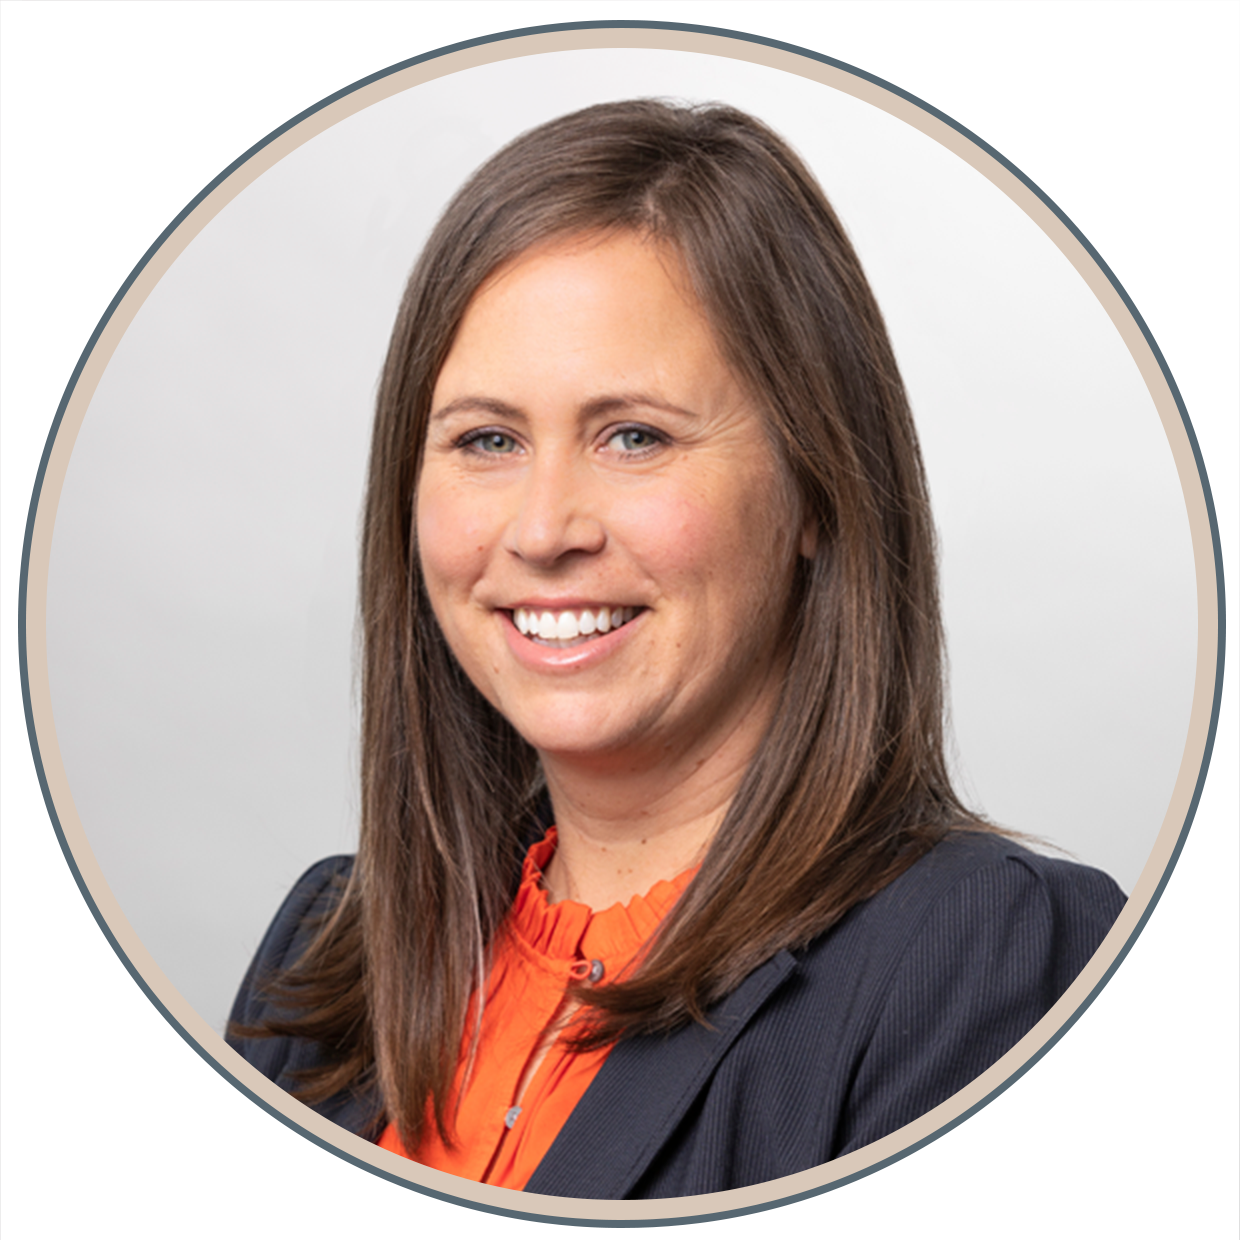 Laura Peterson is Client Advisor for Johnson Financial Group.